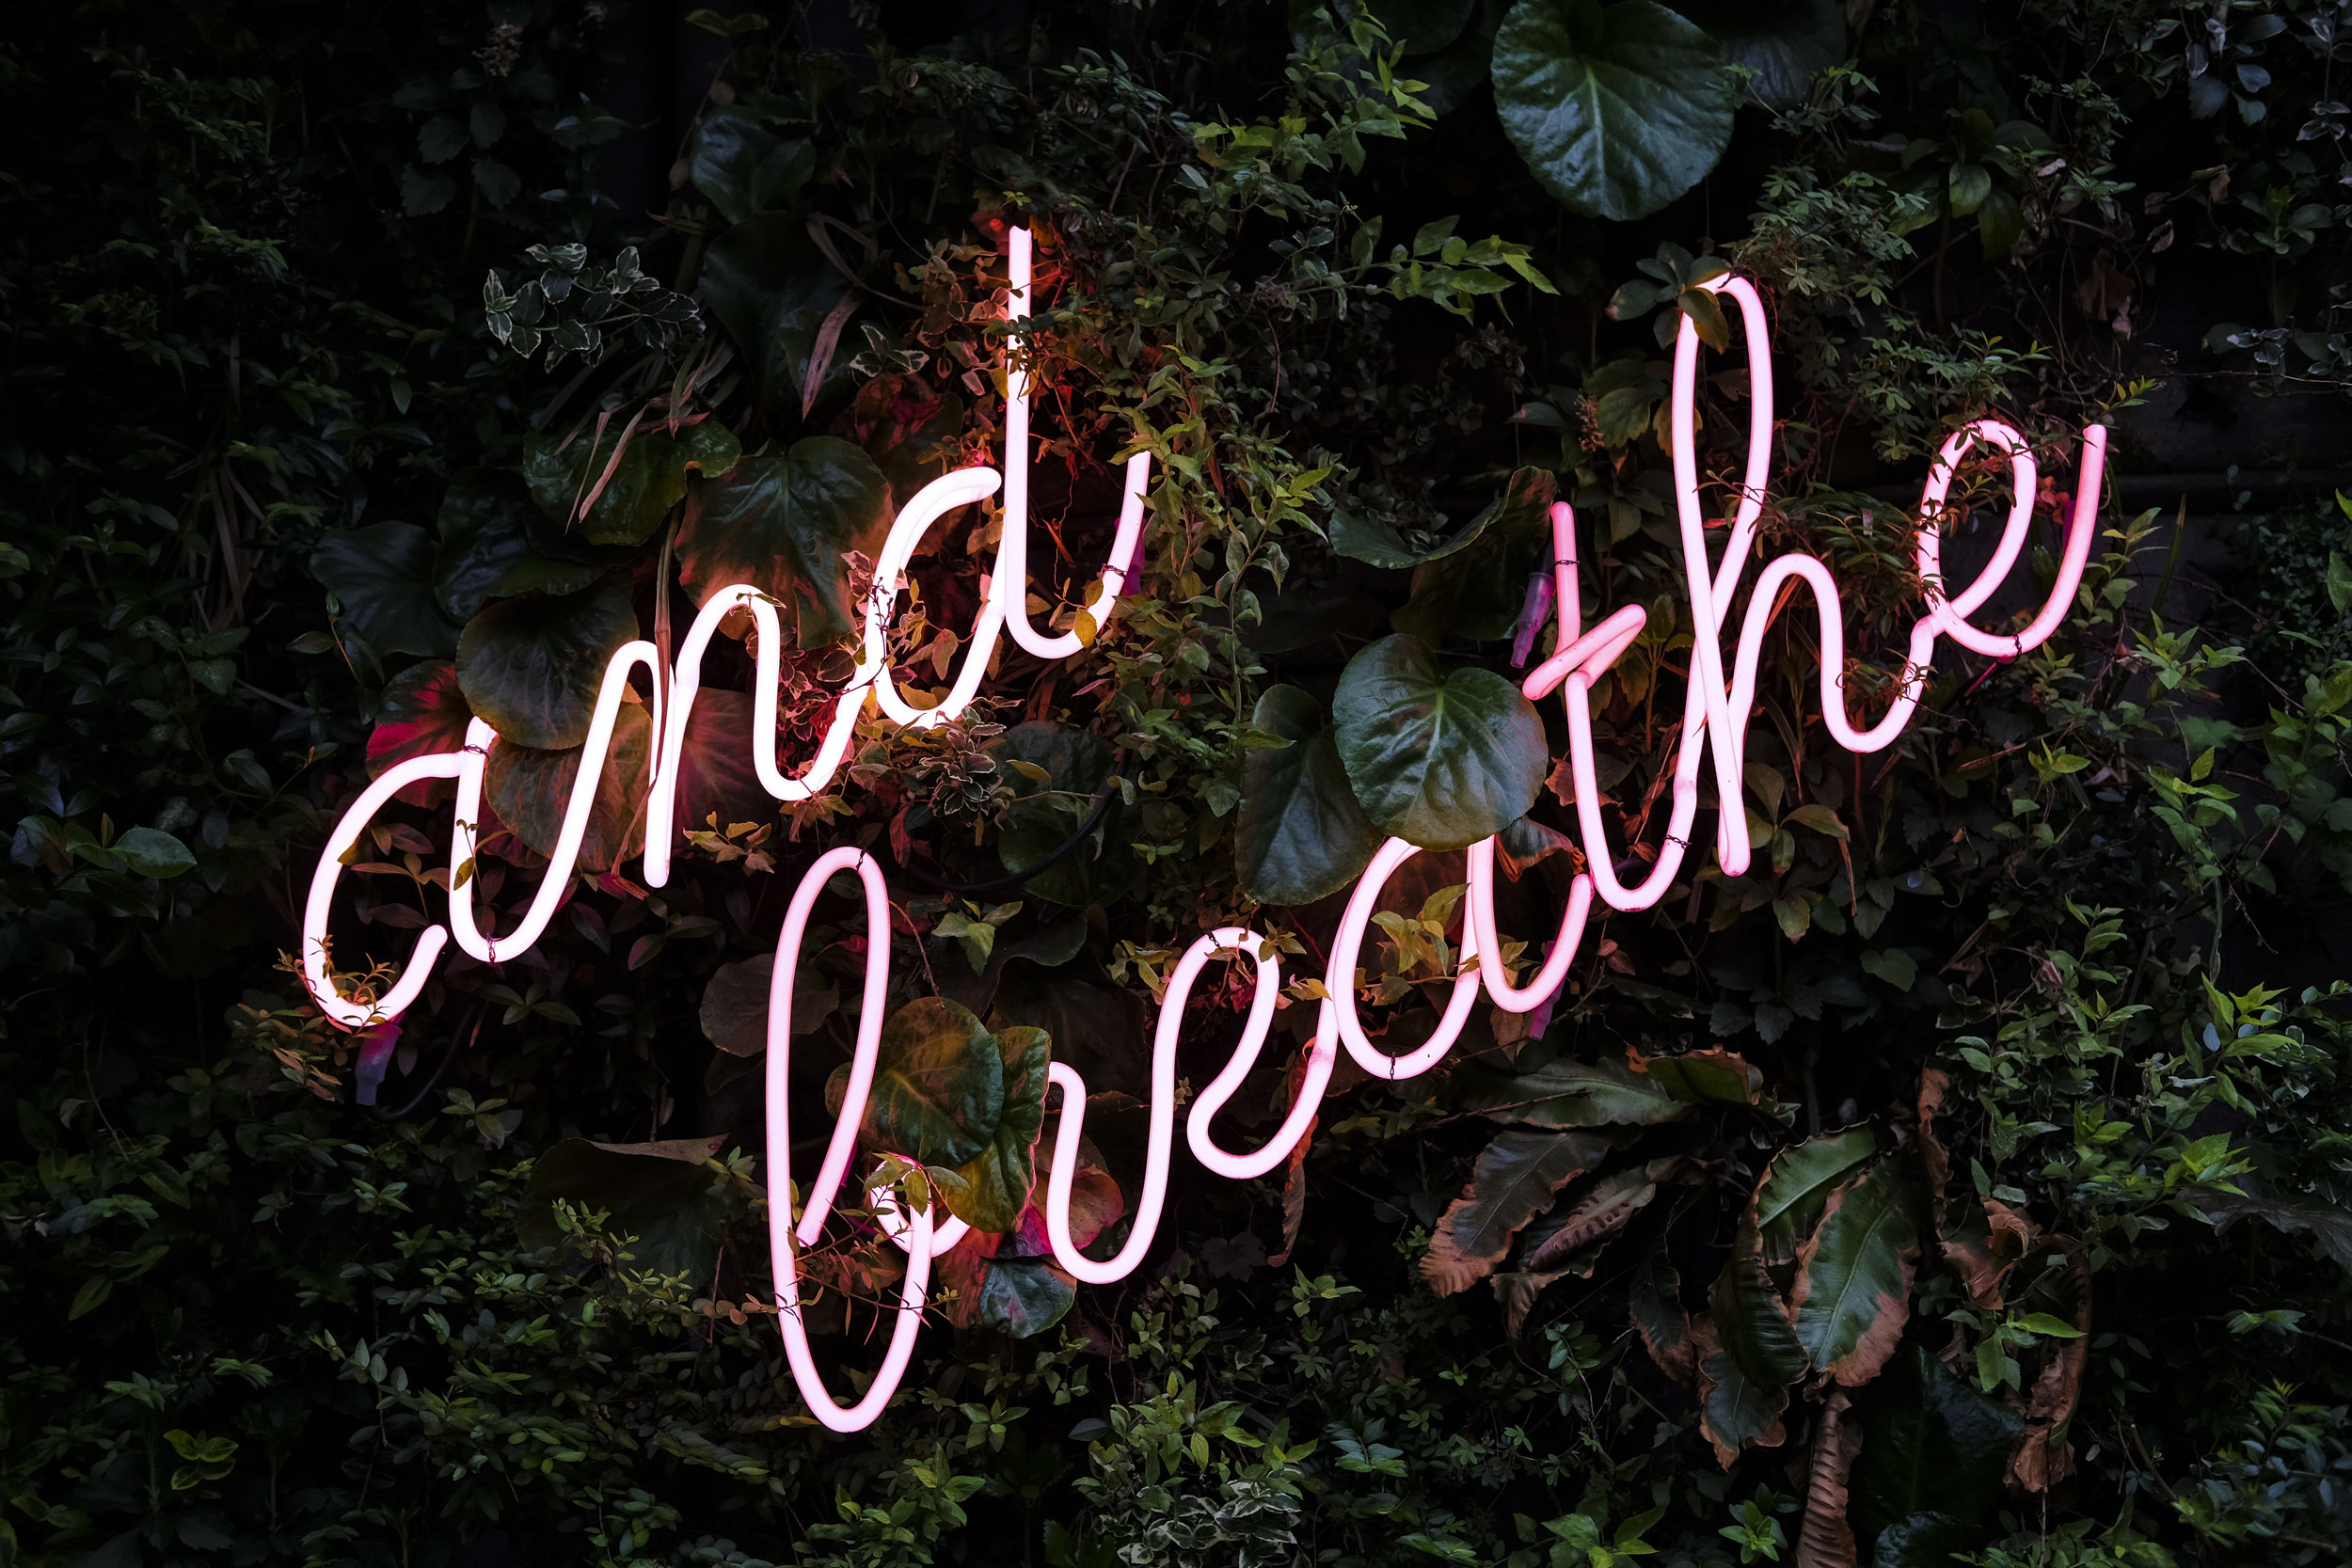 Breathing is an underrated stress reliever. Take several deep breaths to help yourself find center.